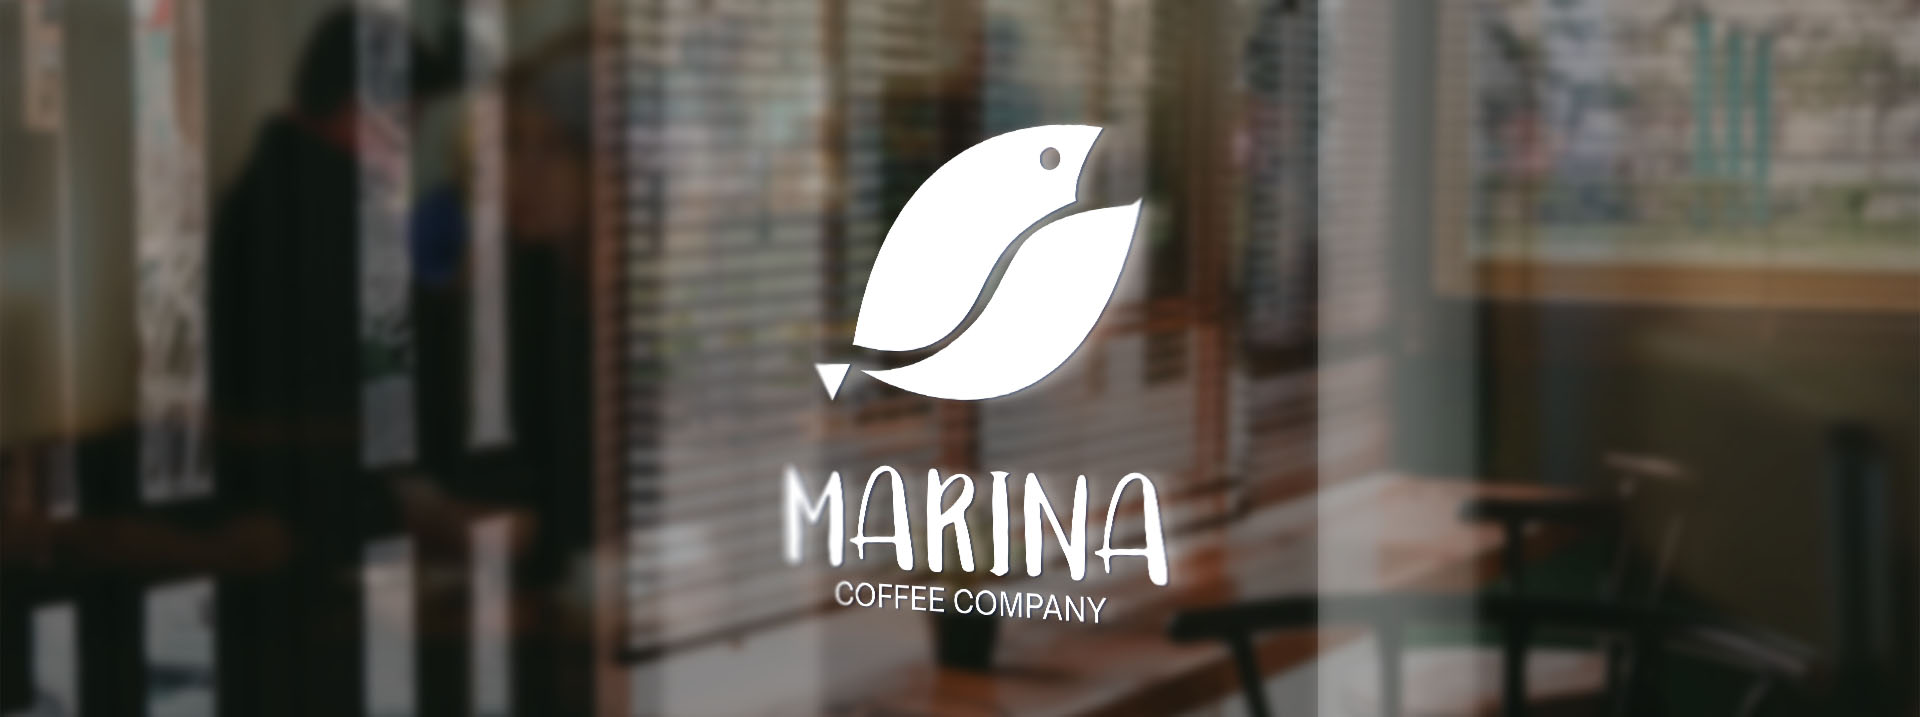 Glass door with a logo